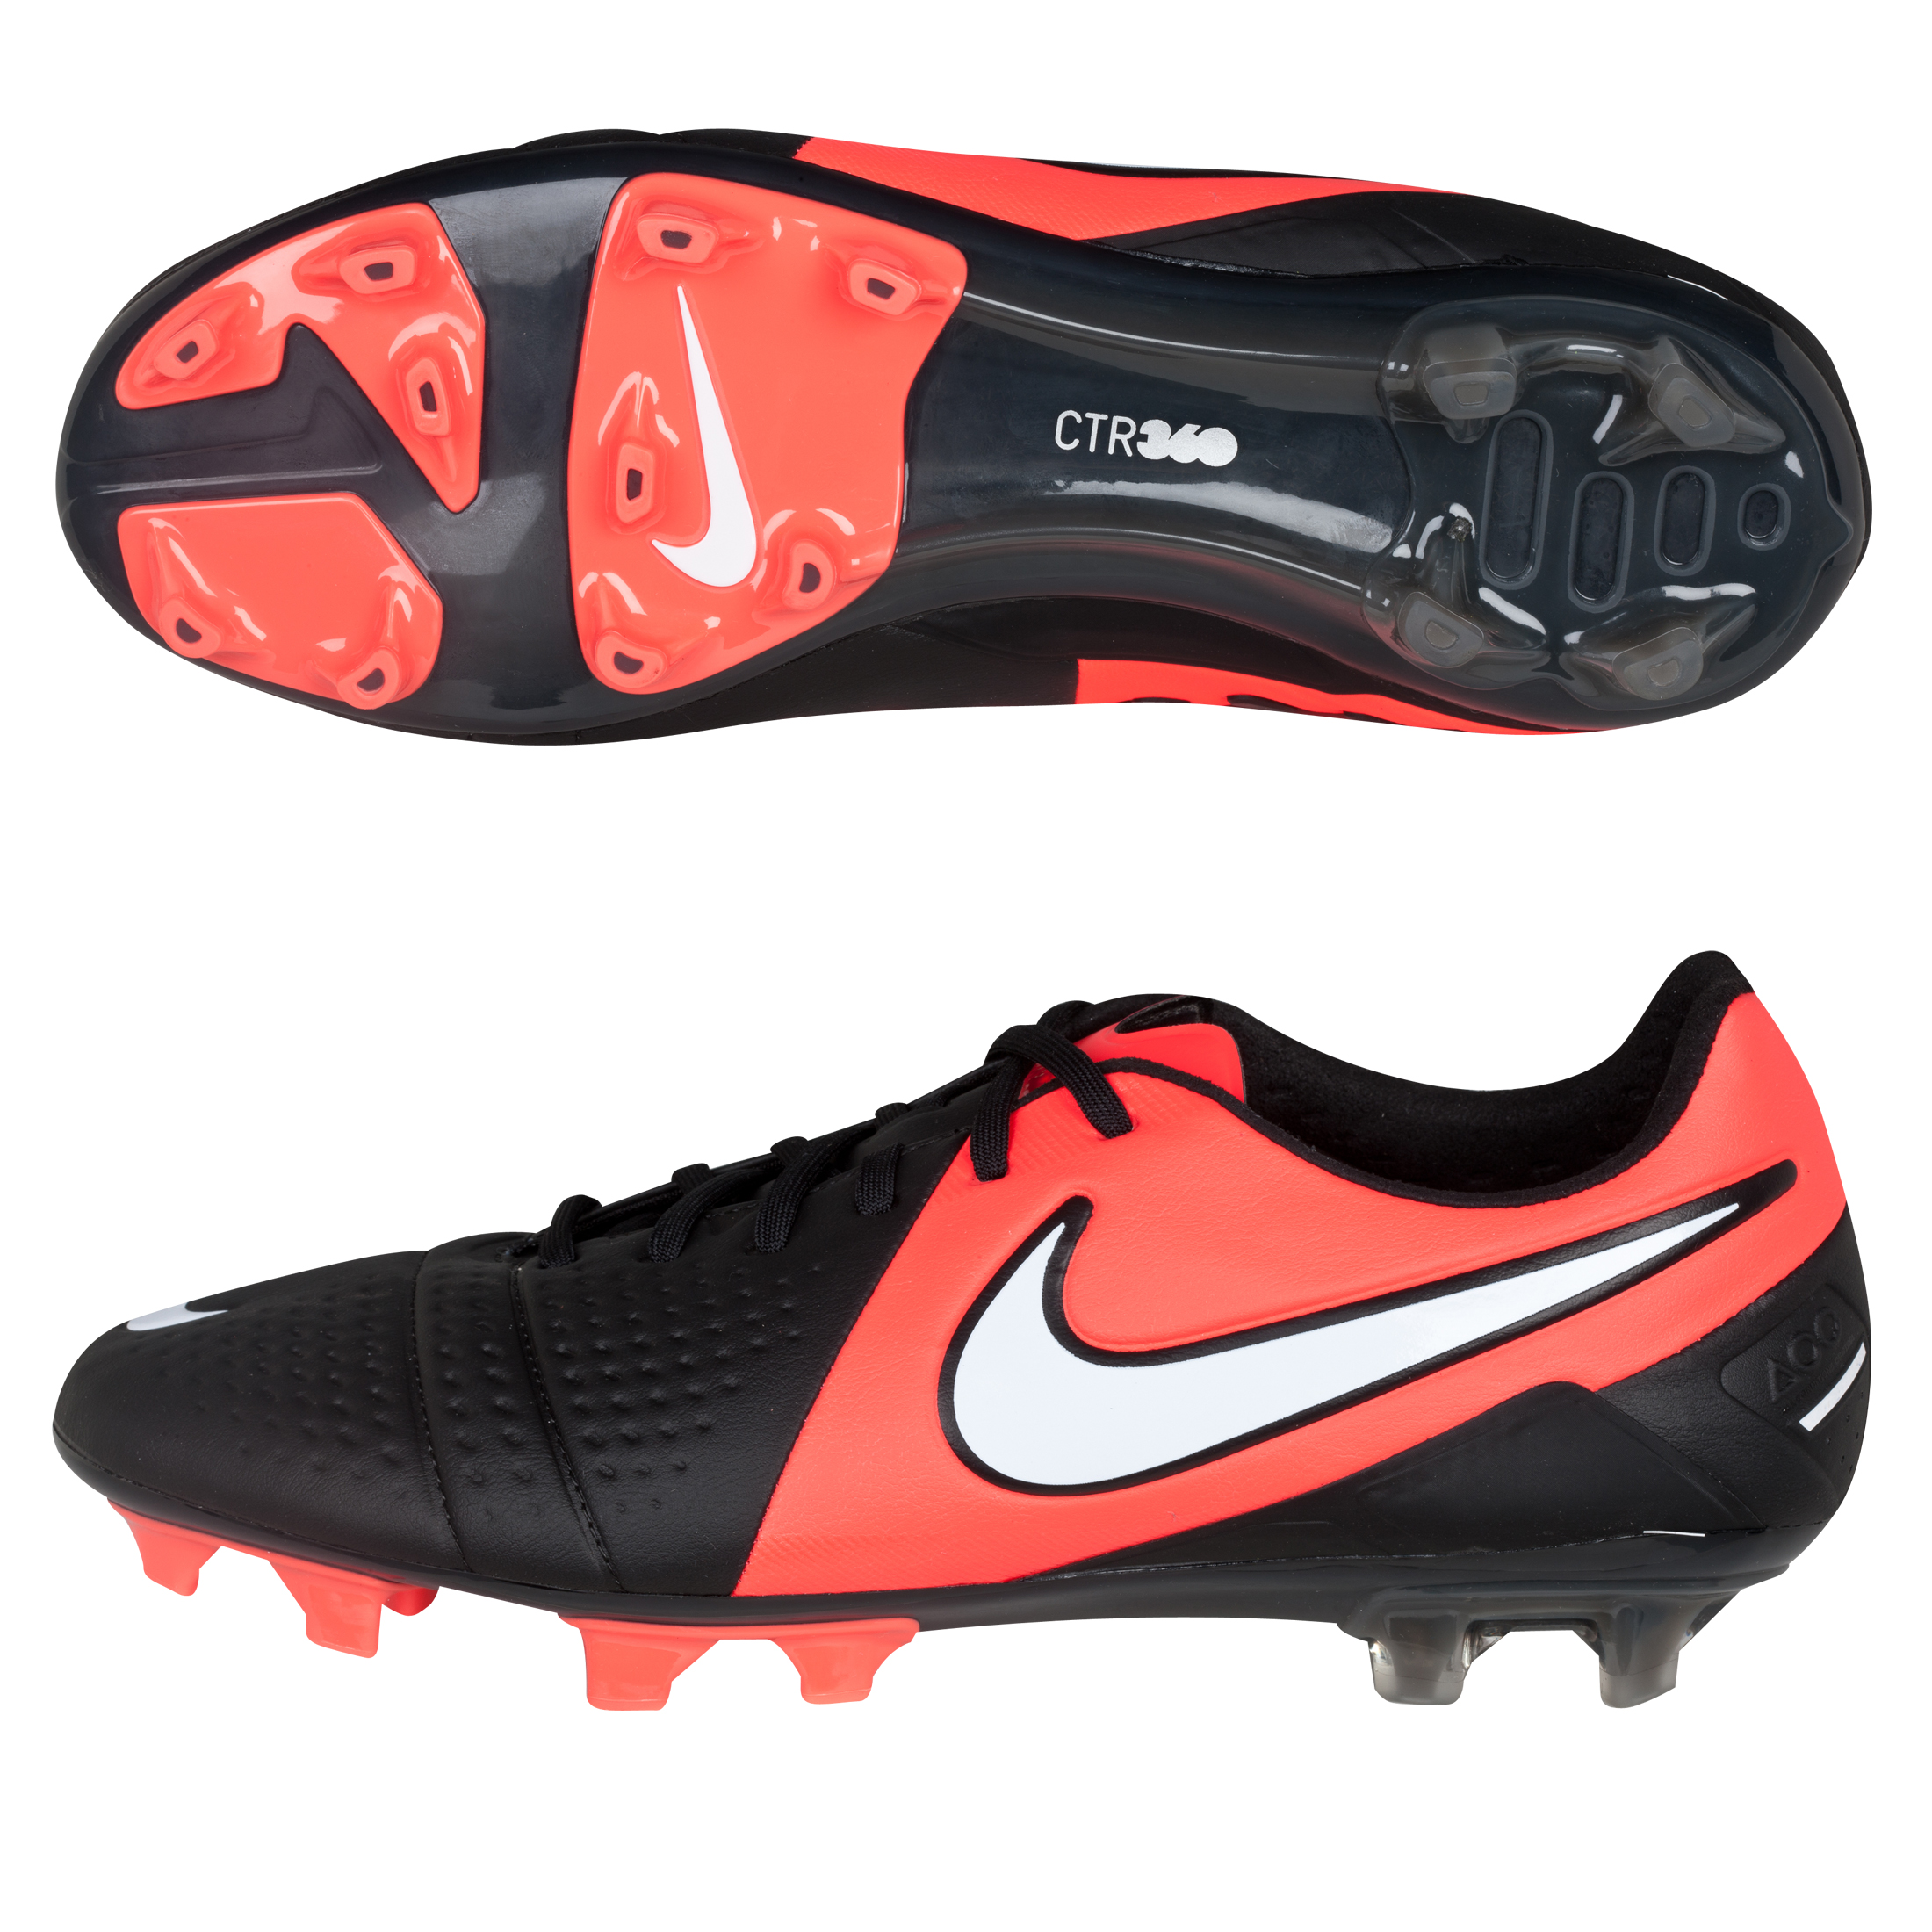 Nike CTR360 Maestri III Firm Ground Football Boots - Black/White/Bright Crimson